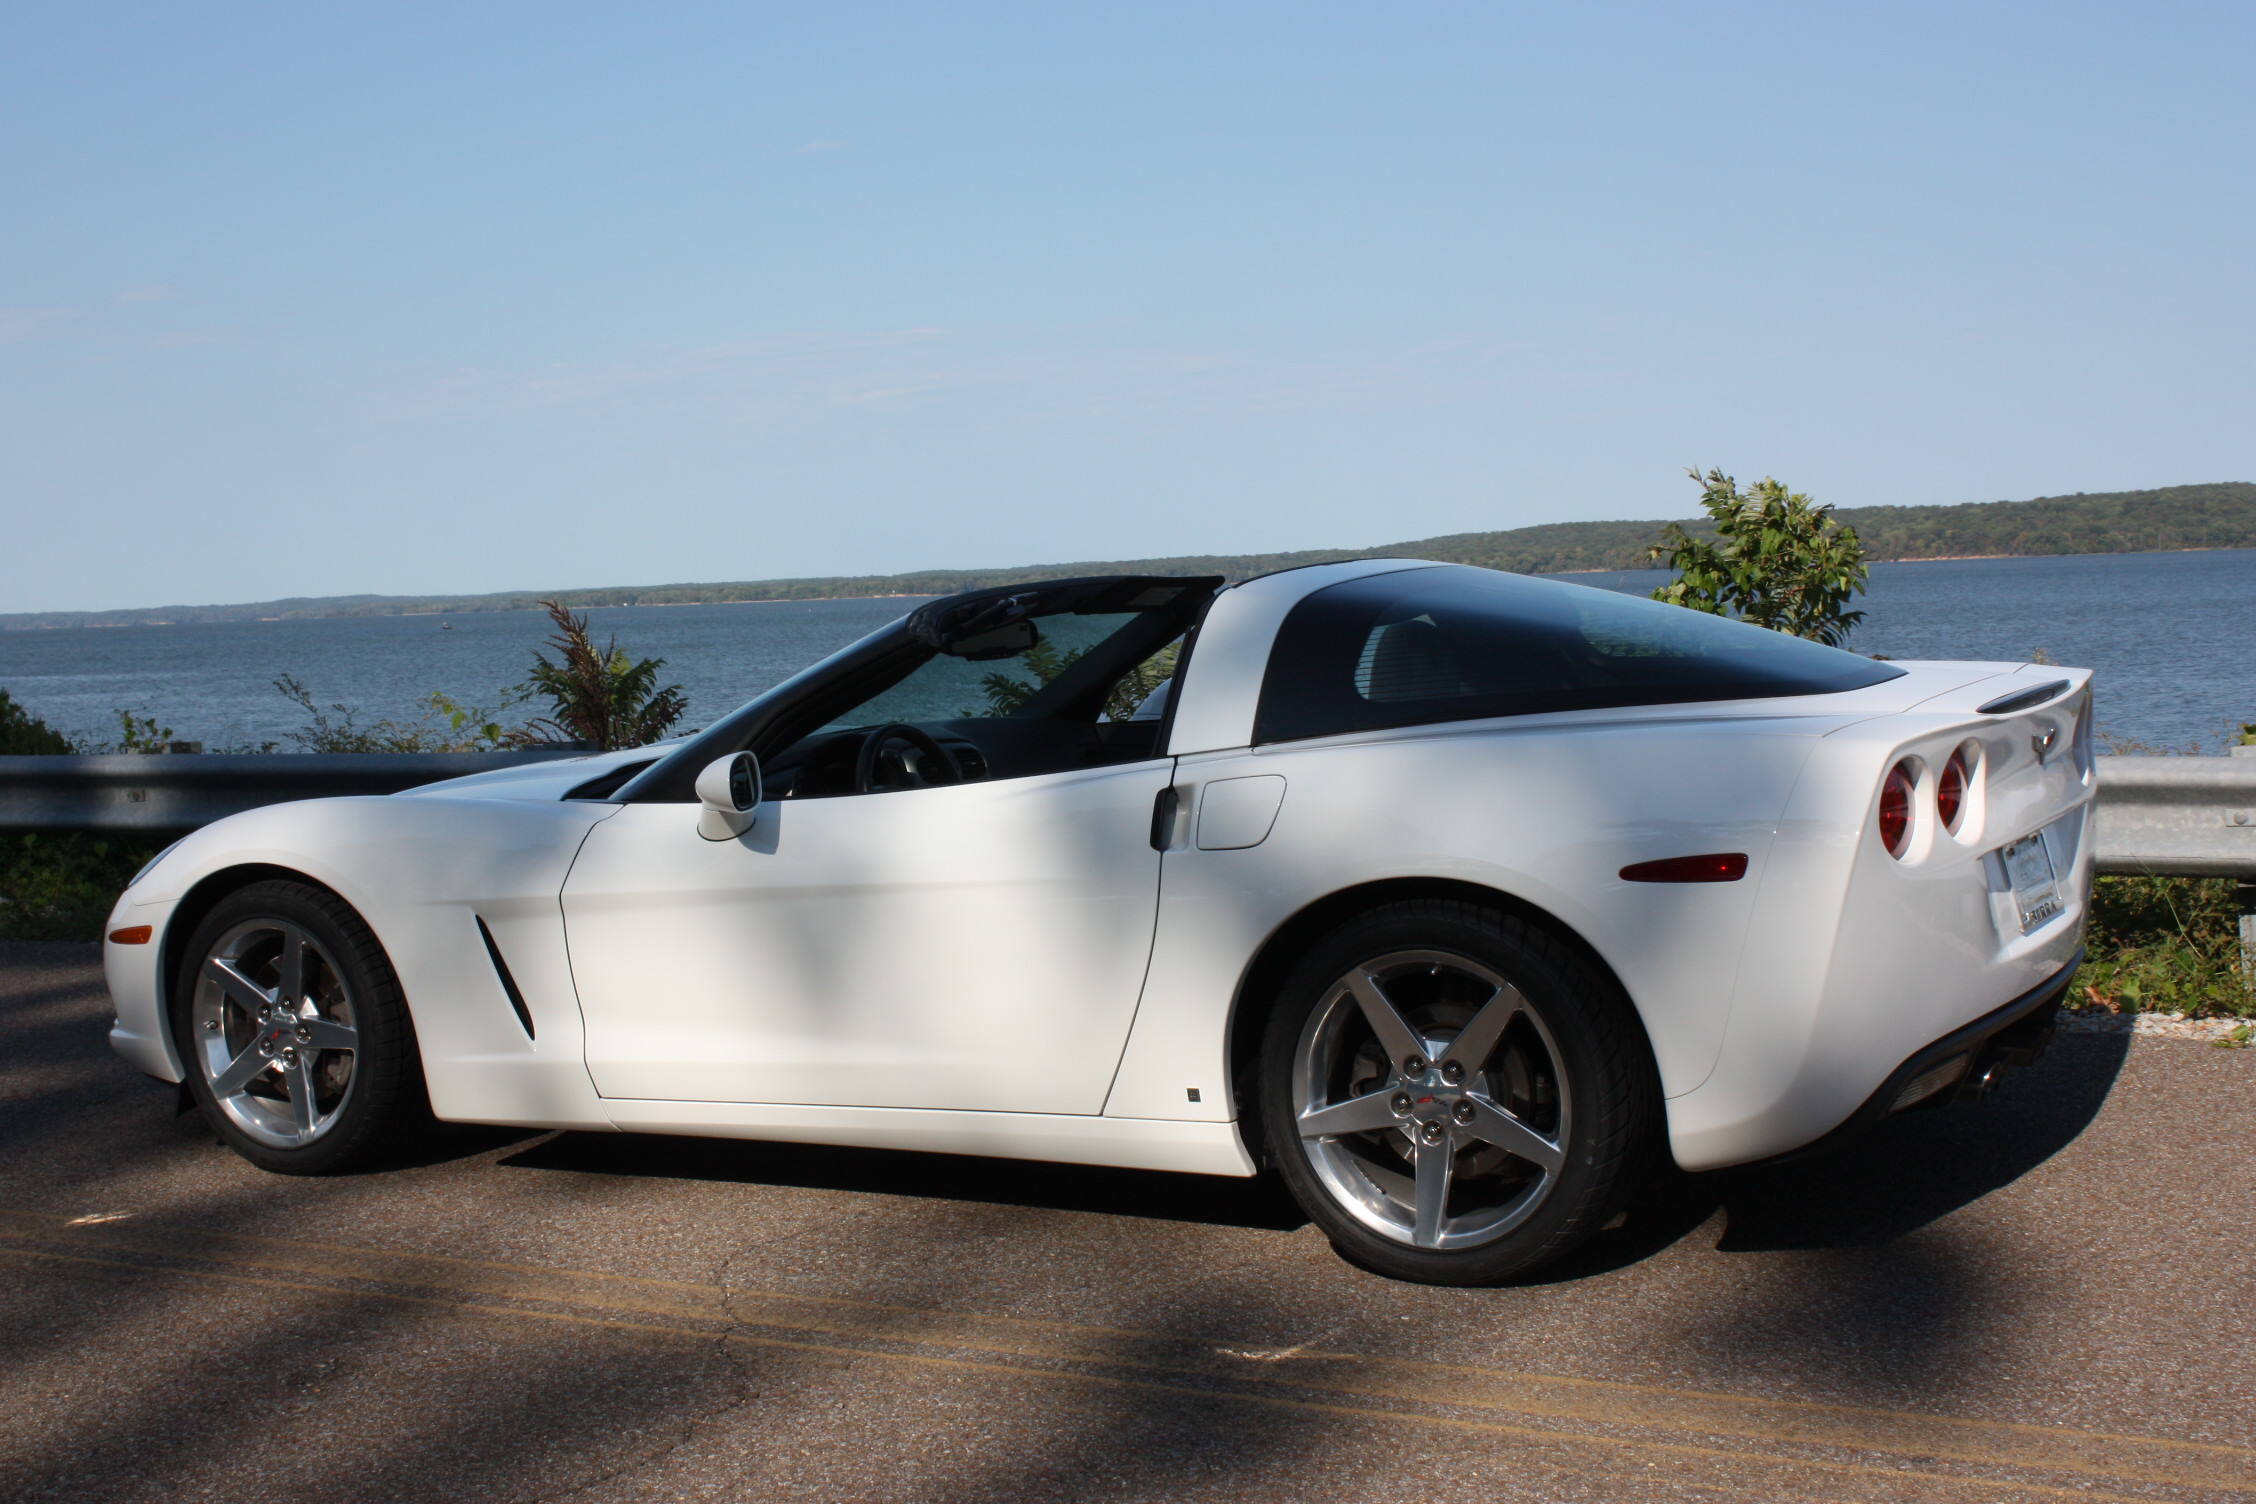 White 2006 Chevrolet Corvette Coupe